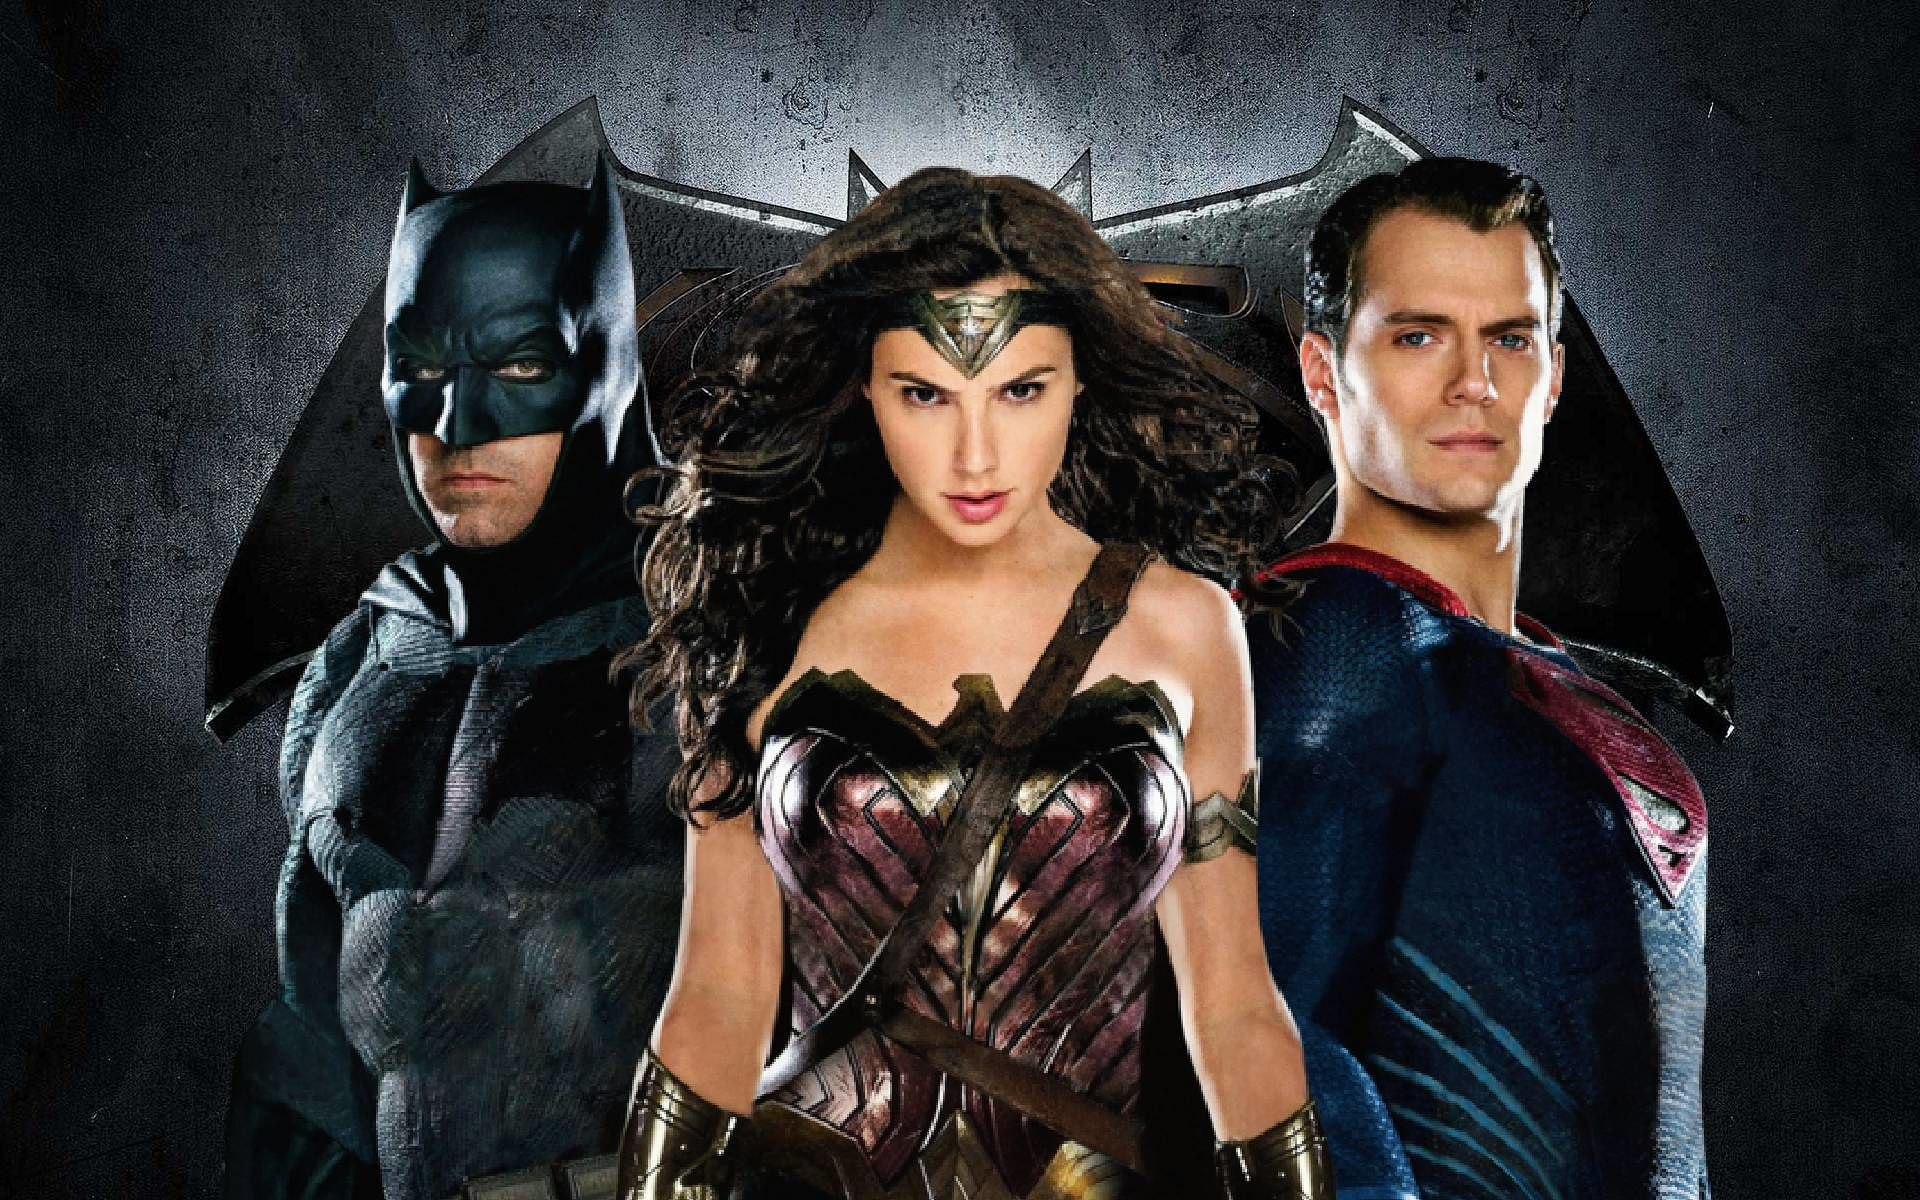 Photo of 4 Superhero Movie Crossovers You Should Watch